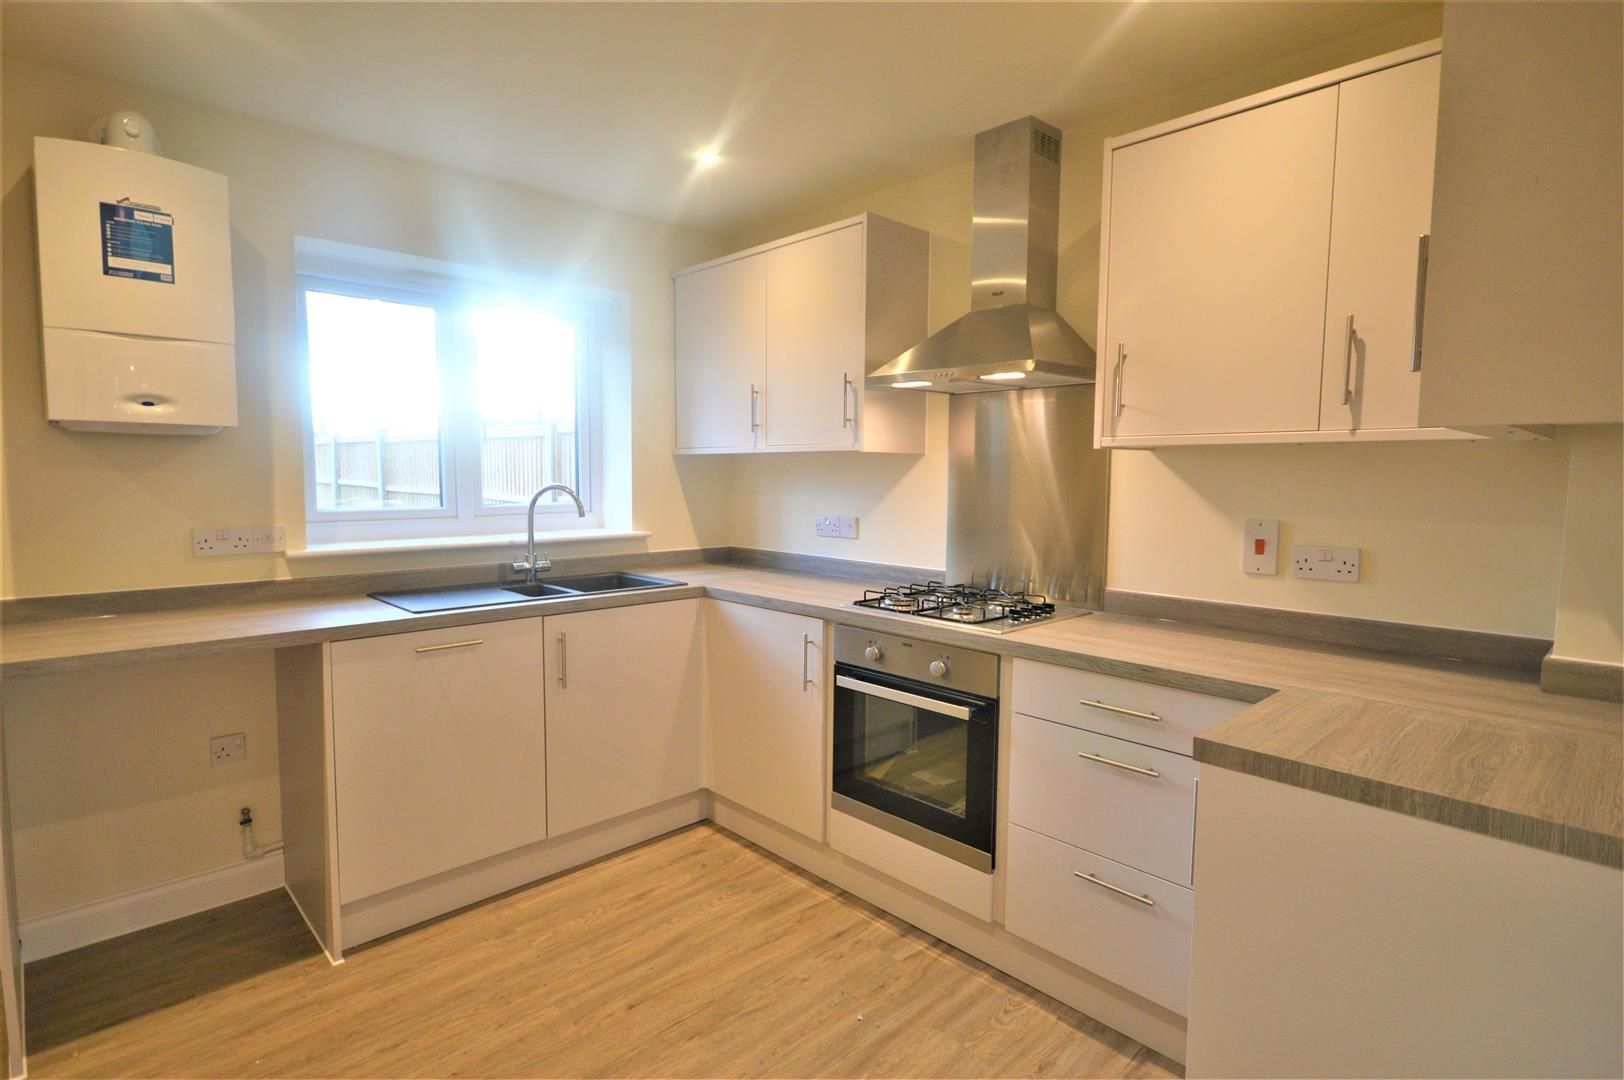 2 bed terraced for sale in Kingsland 3